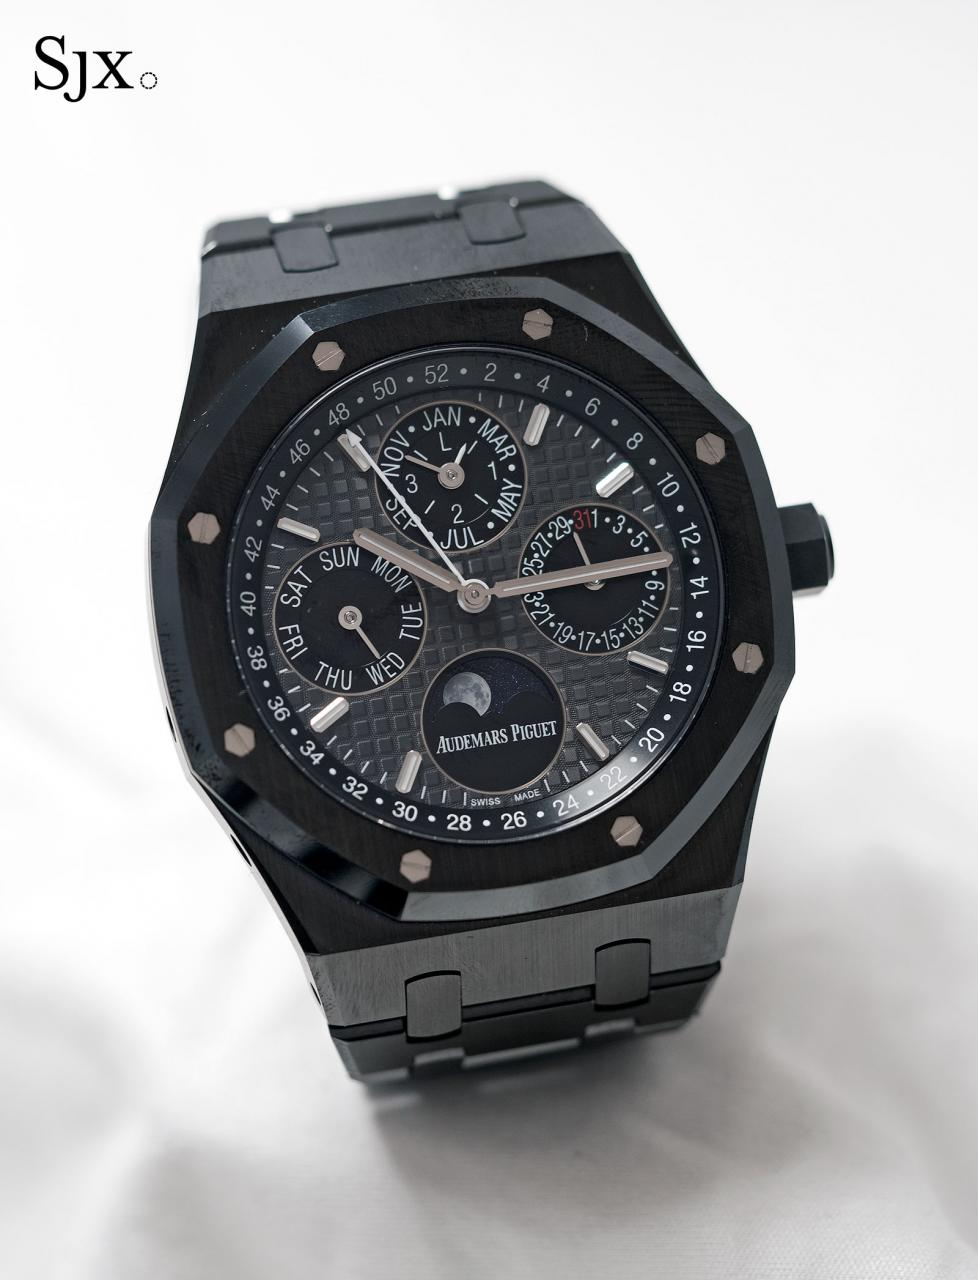 Audemars Piguet Royal Oak Perpetual Calendar Black Ceramic 05